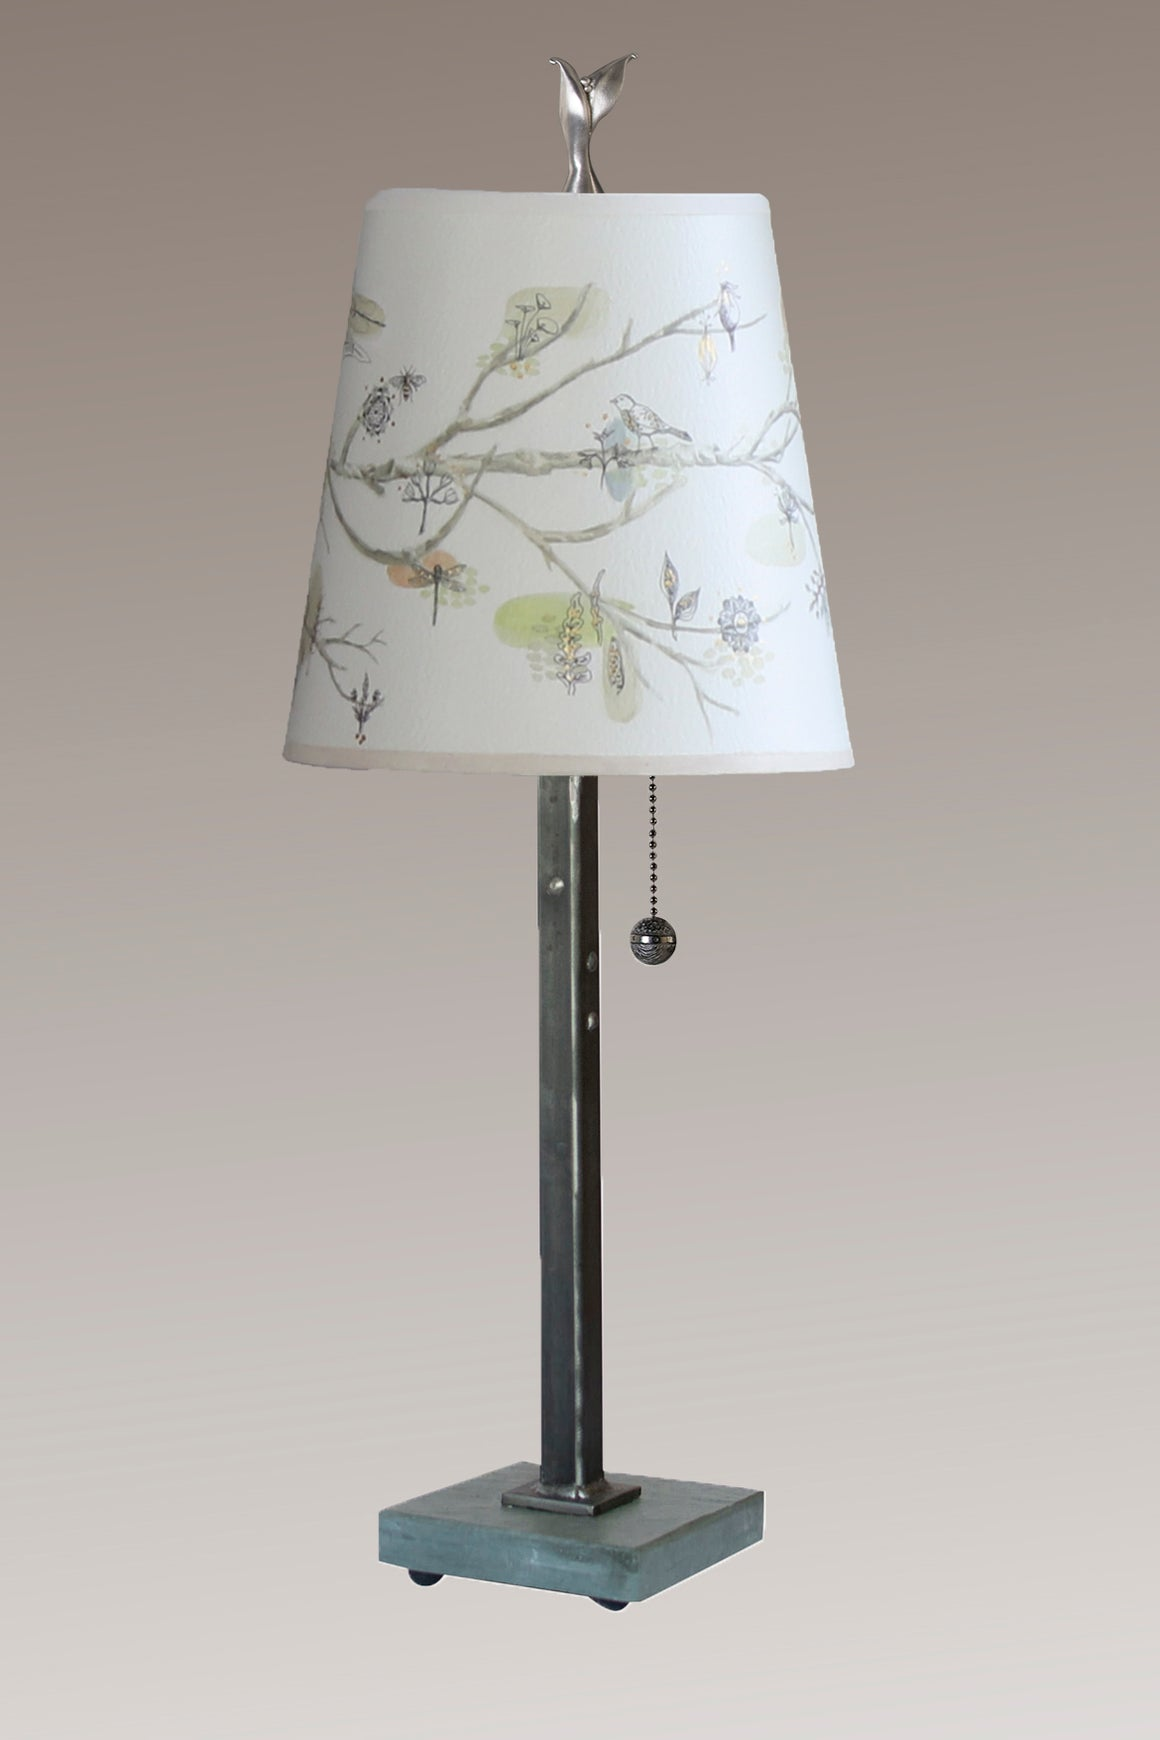 Steel Table Lamp on Vermont Slate Base with Small Drum Shade in Artful Branch